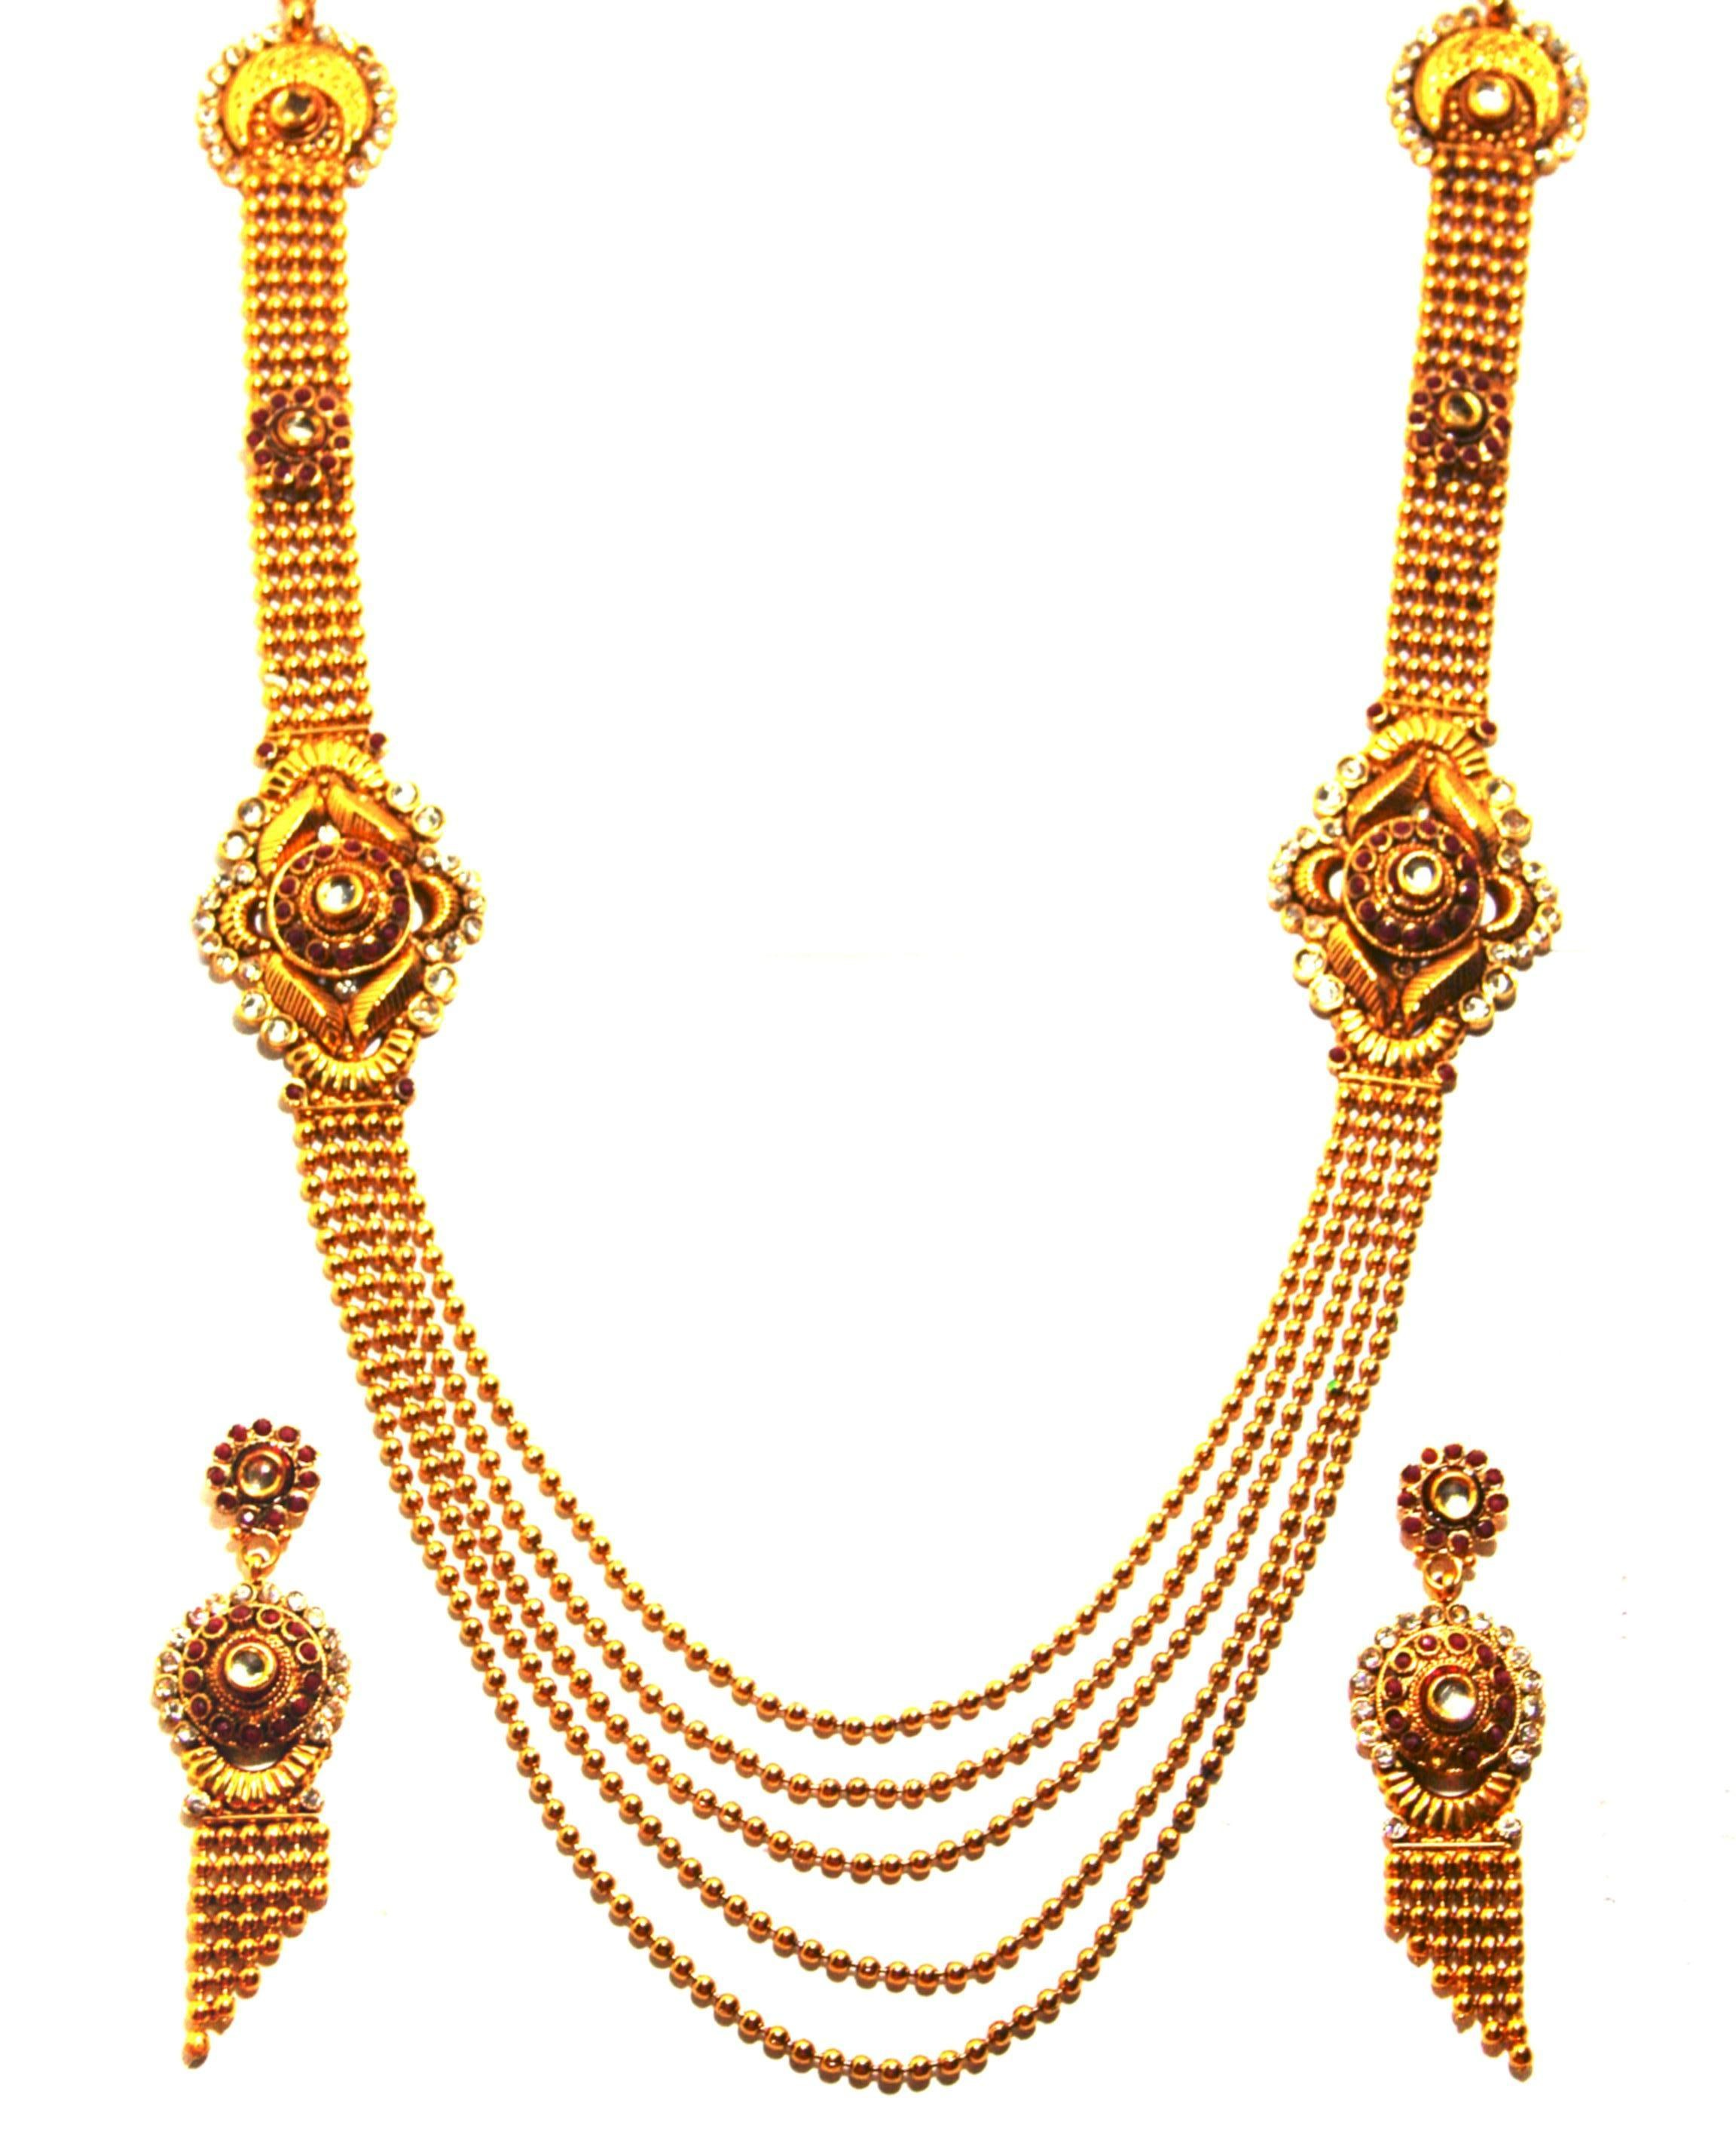 Gold Long Necklace Online 1gm Gold Platted Long Necklace